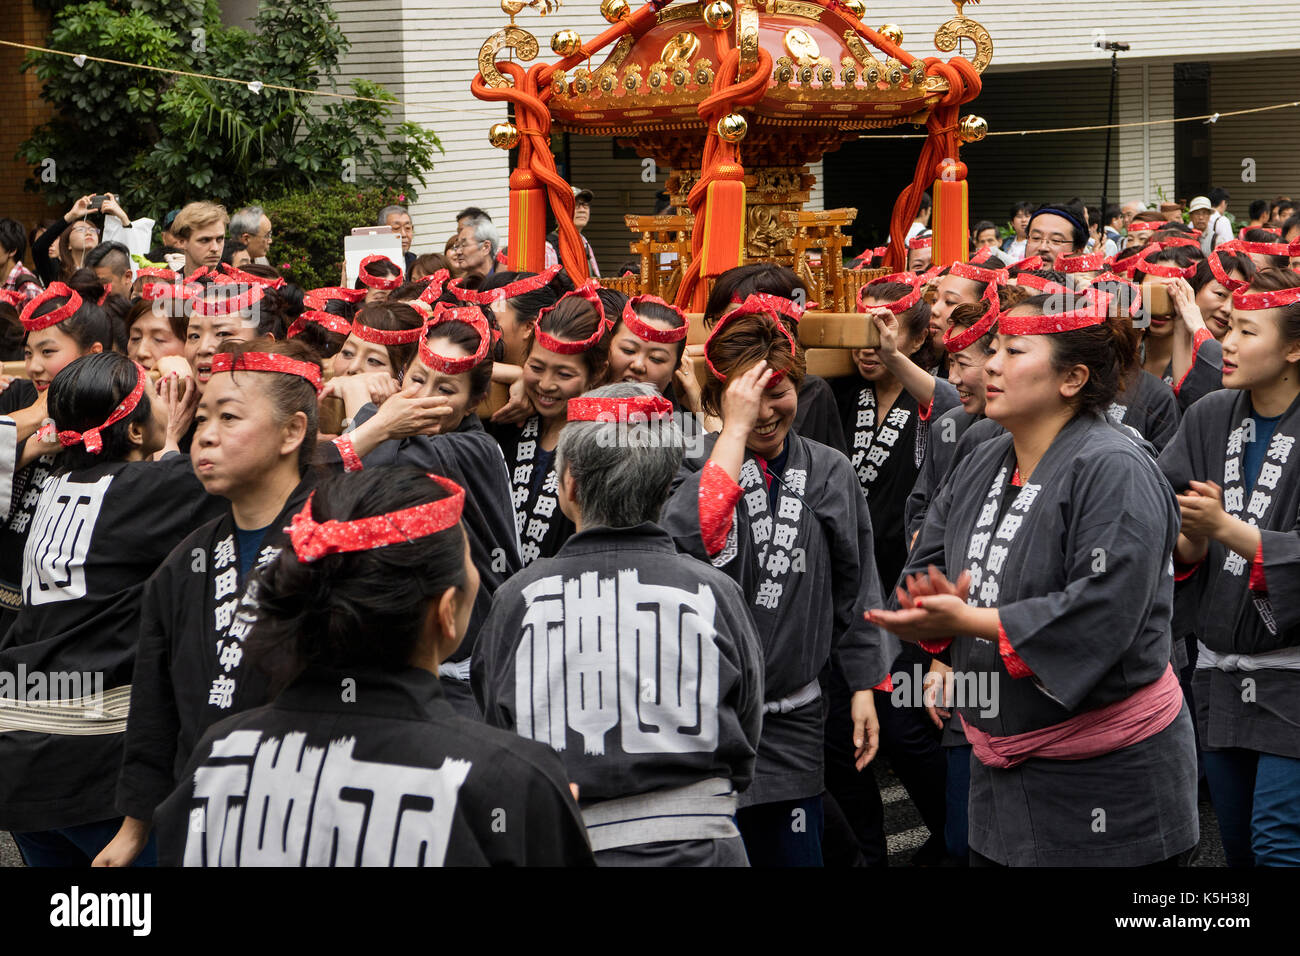 Tokyo, Japan - May 14, 2017: Kanda Matsuri Festival, a parade of portable shrines named mikoshi carried by women - Stock Image